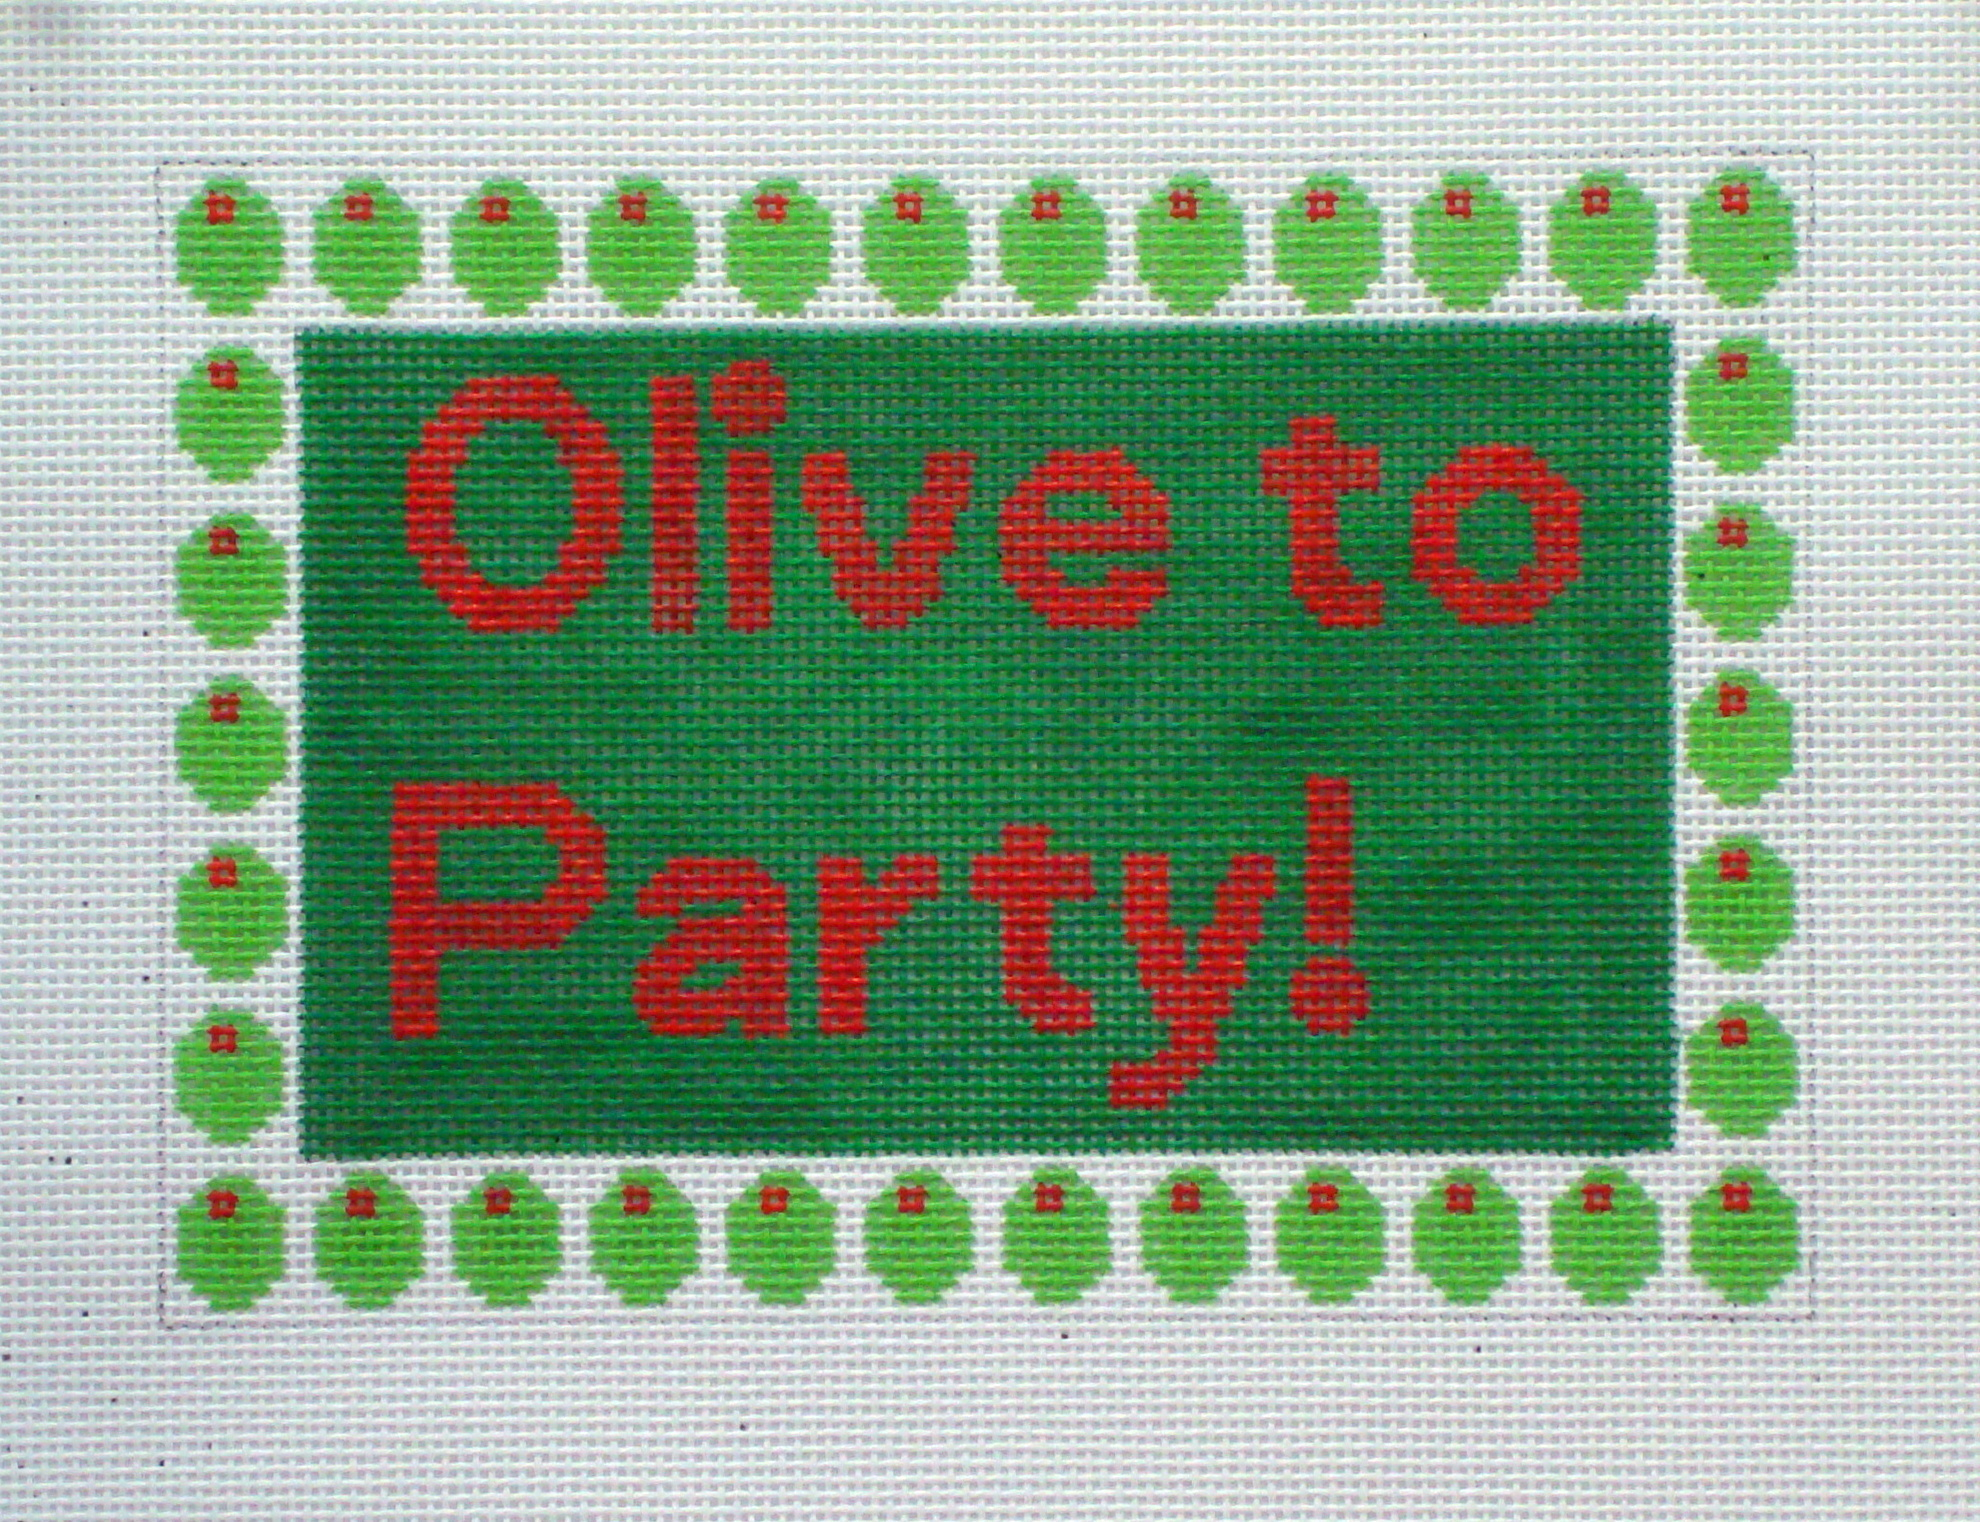 Olive to Party A84-S543